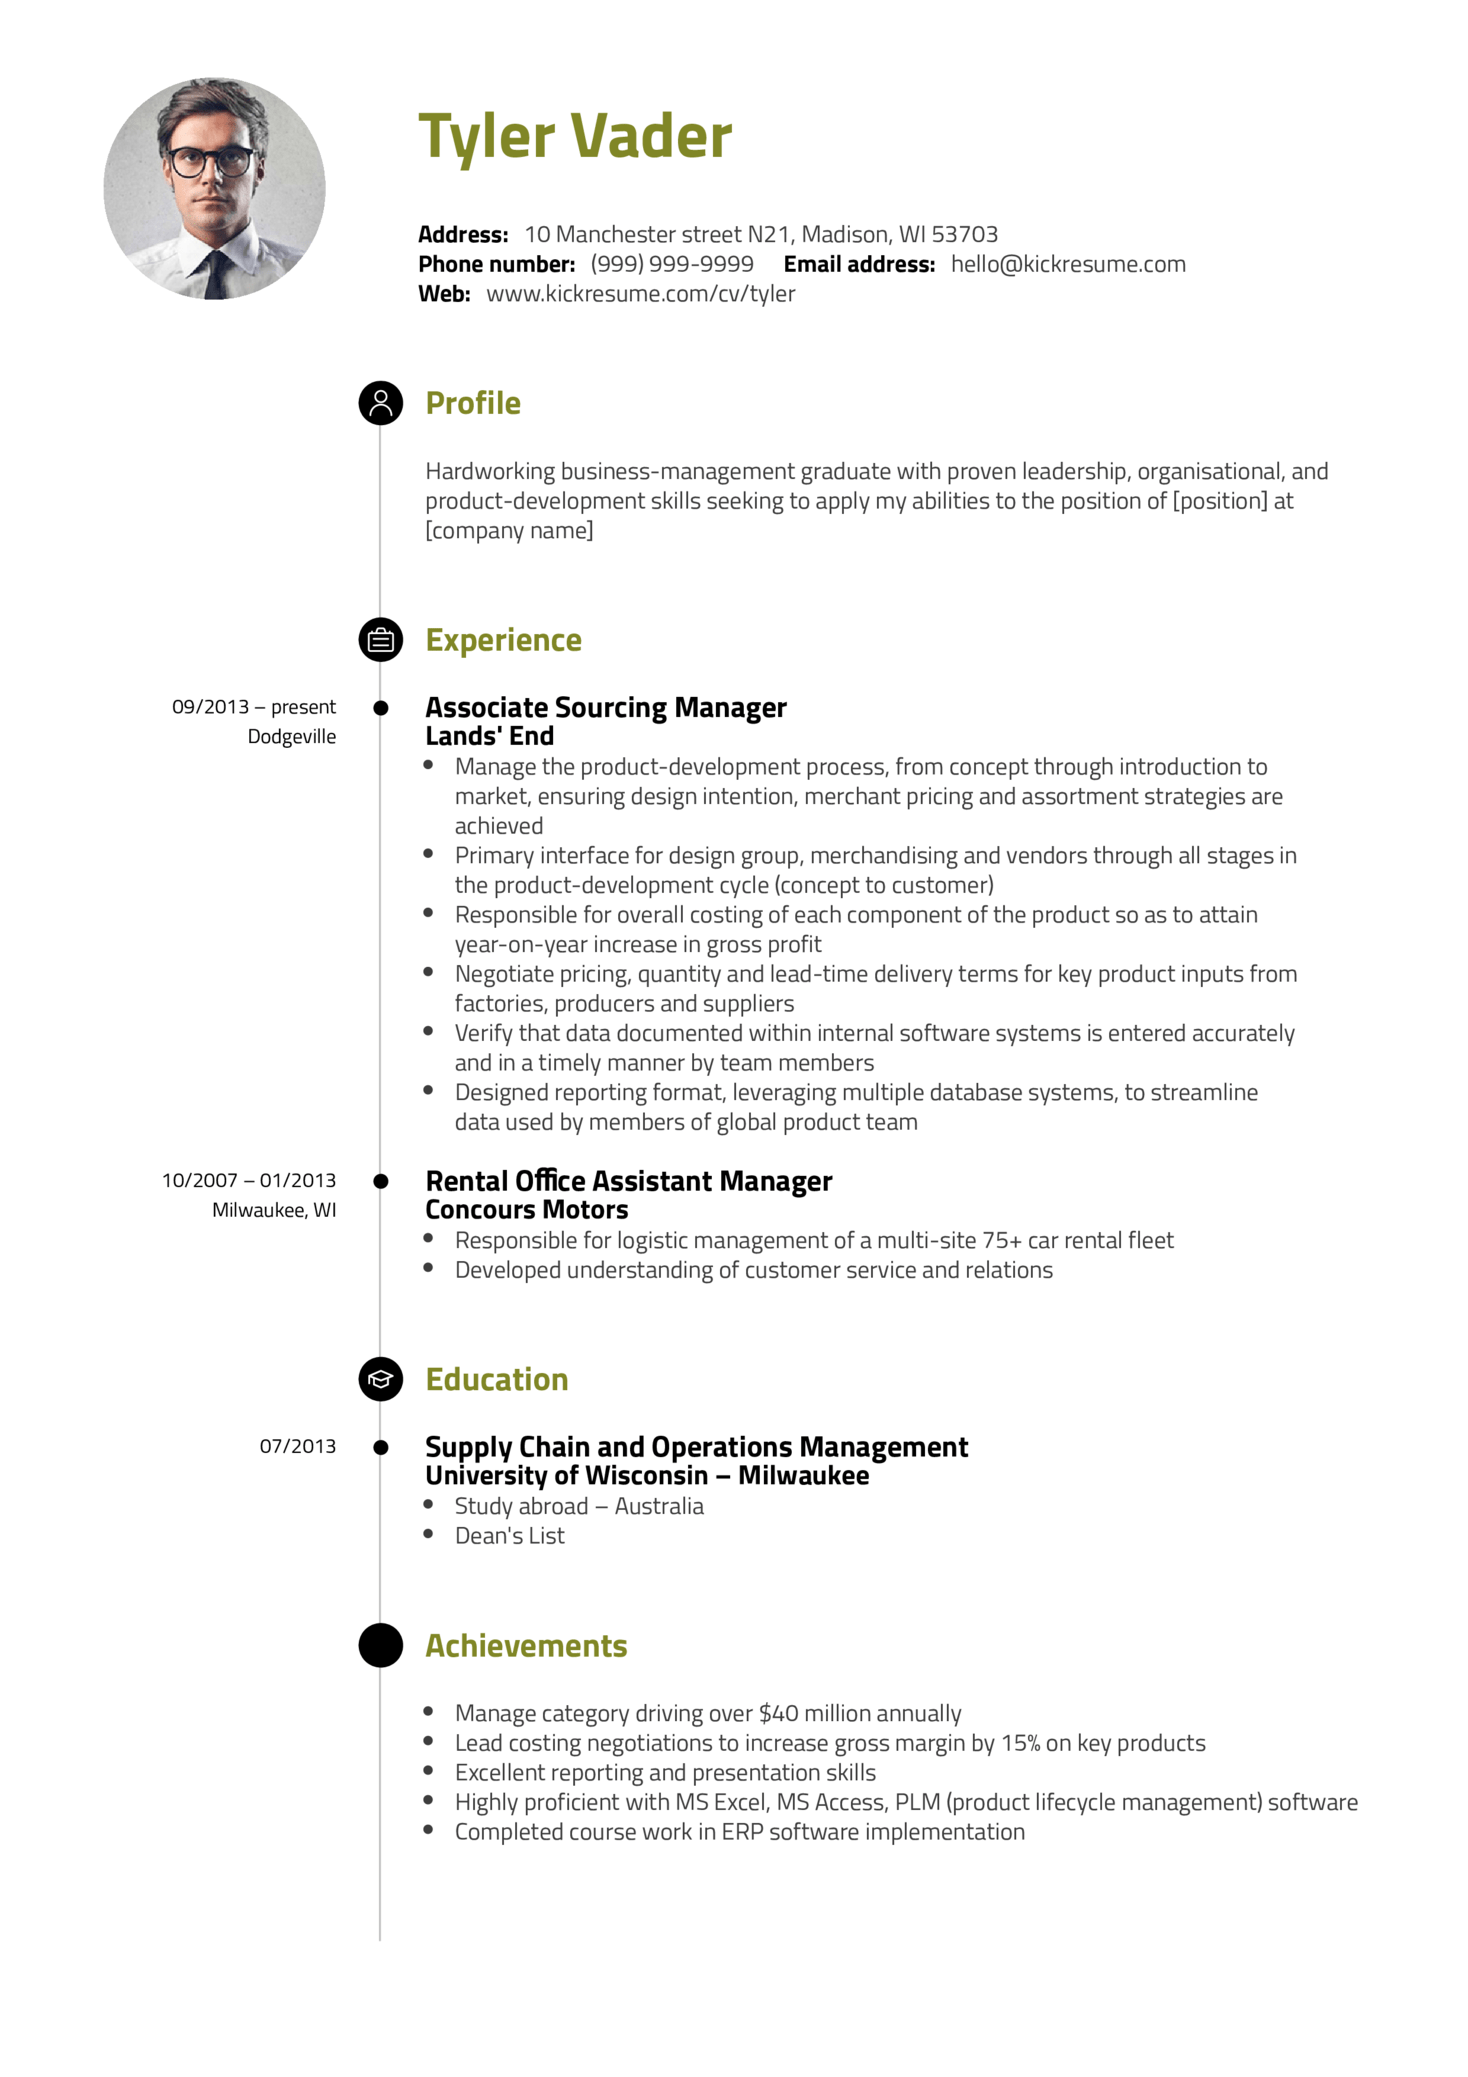 Business Management Graduate Cv Example  Work History Resume Example